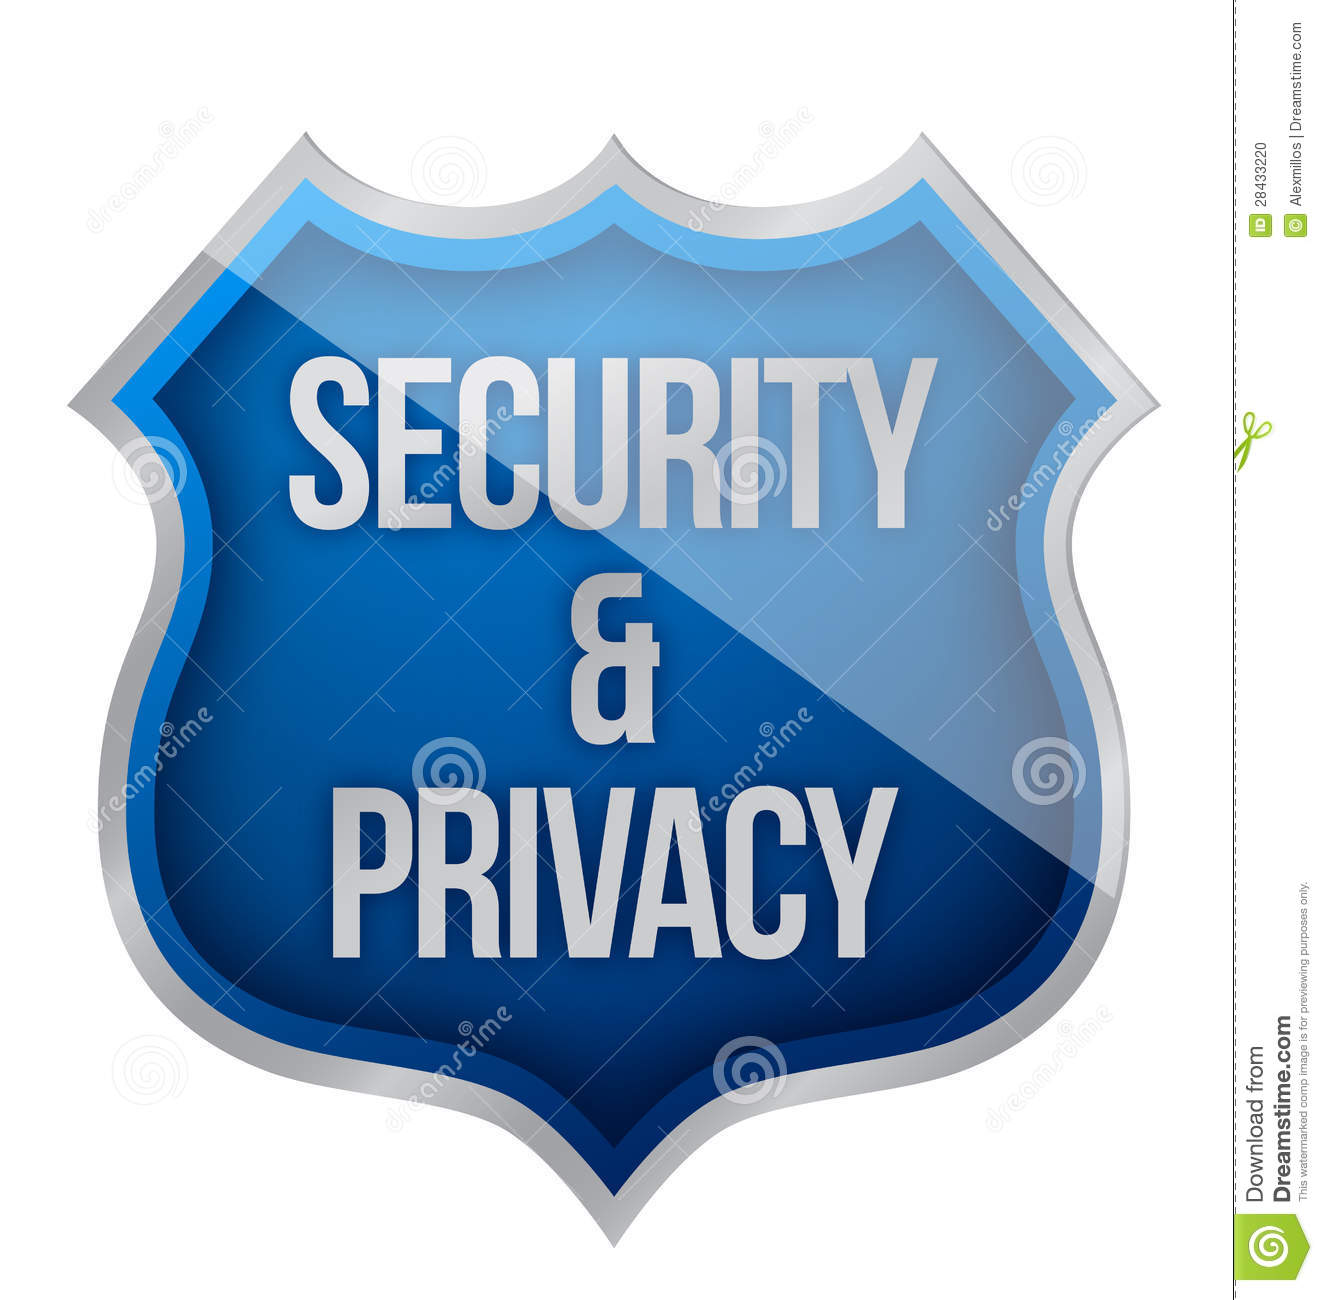 More similar stock images of ` Security and Privacy Shield `